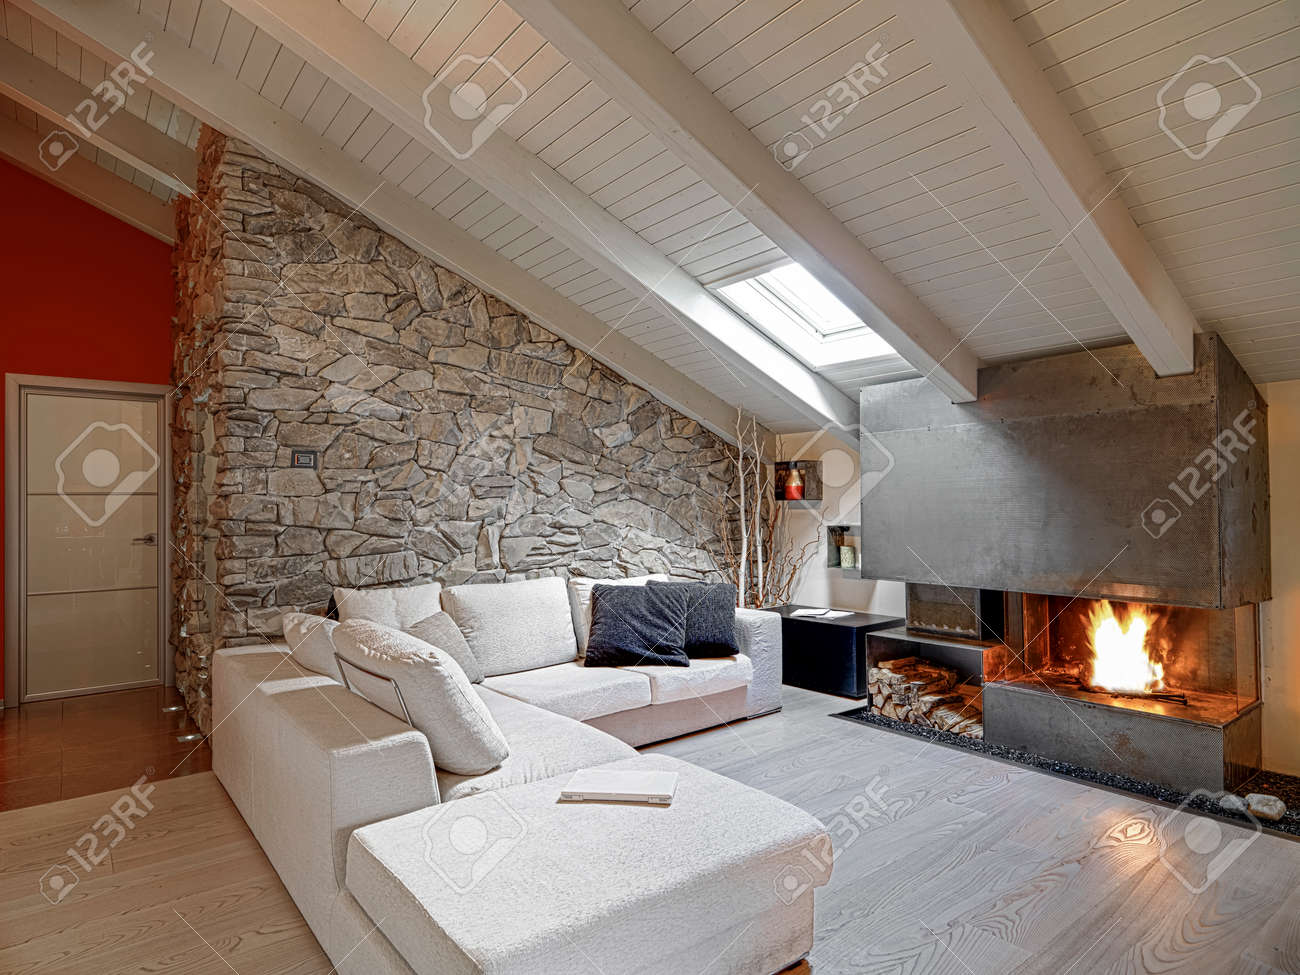 Modern Living Room With Fireplace In The Attic And Wood Floor Stock Photo